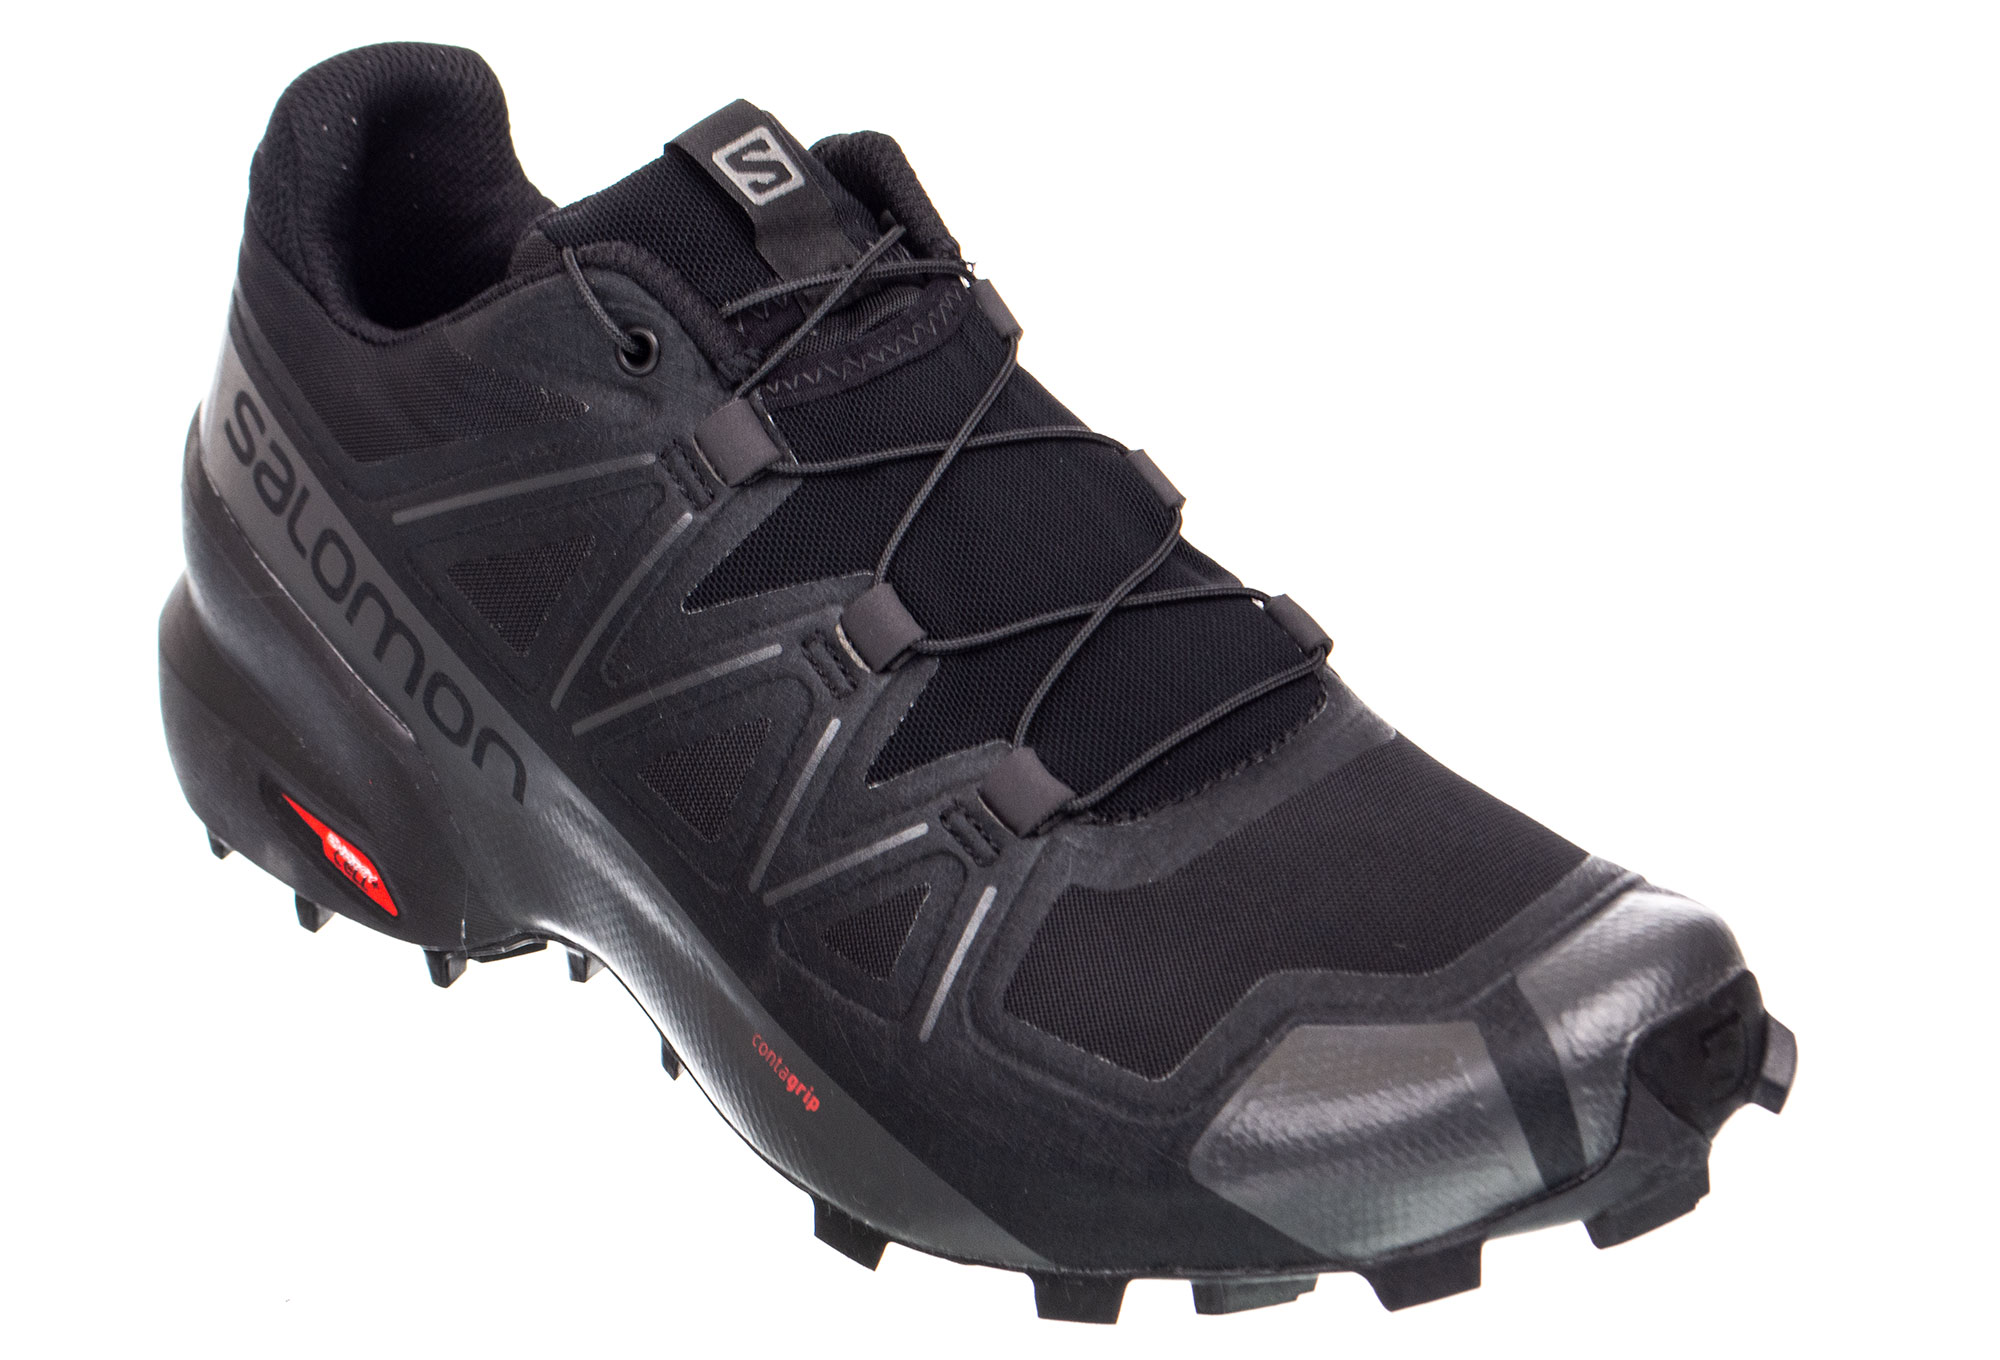 Zapatillas Salomon Speedcross 5 Negras